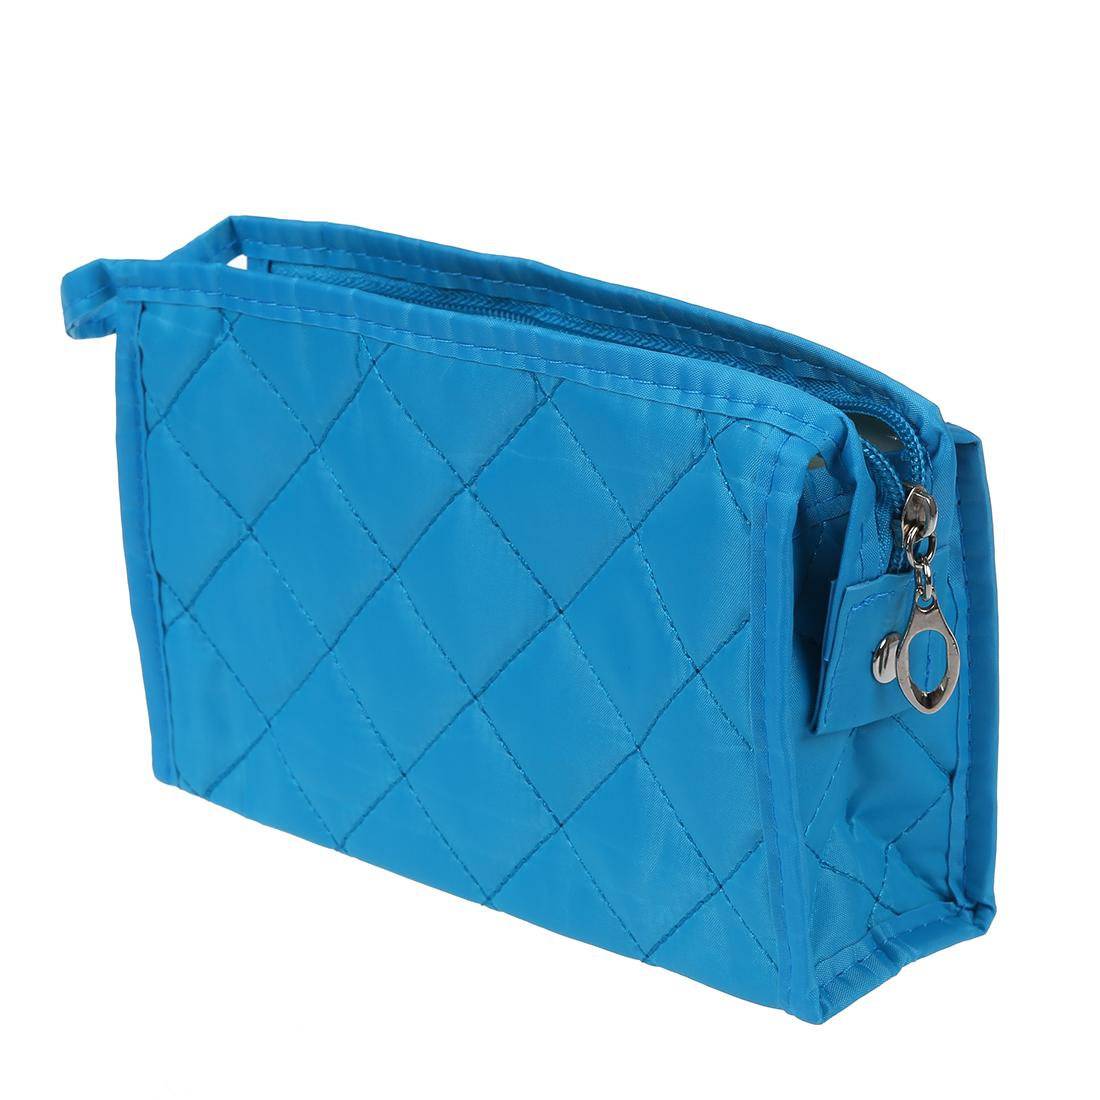 eec4276dc4 Acheter Sac Pochette Maquillage Femme Bleu Rectangle ZipPer De ...